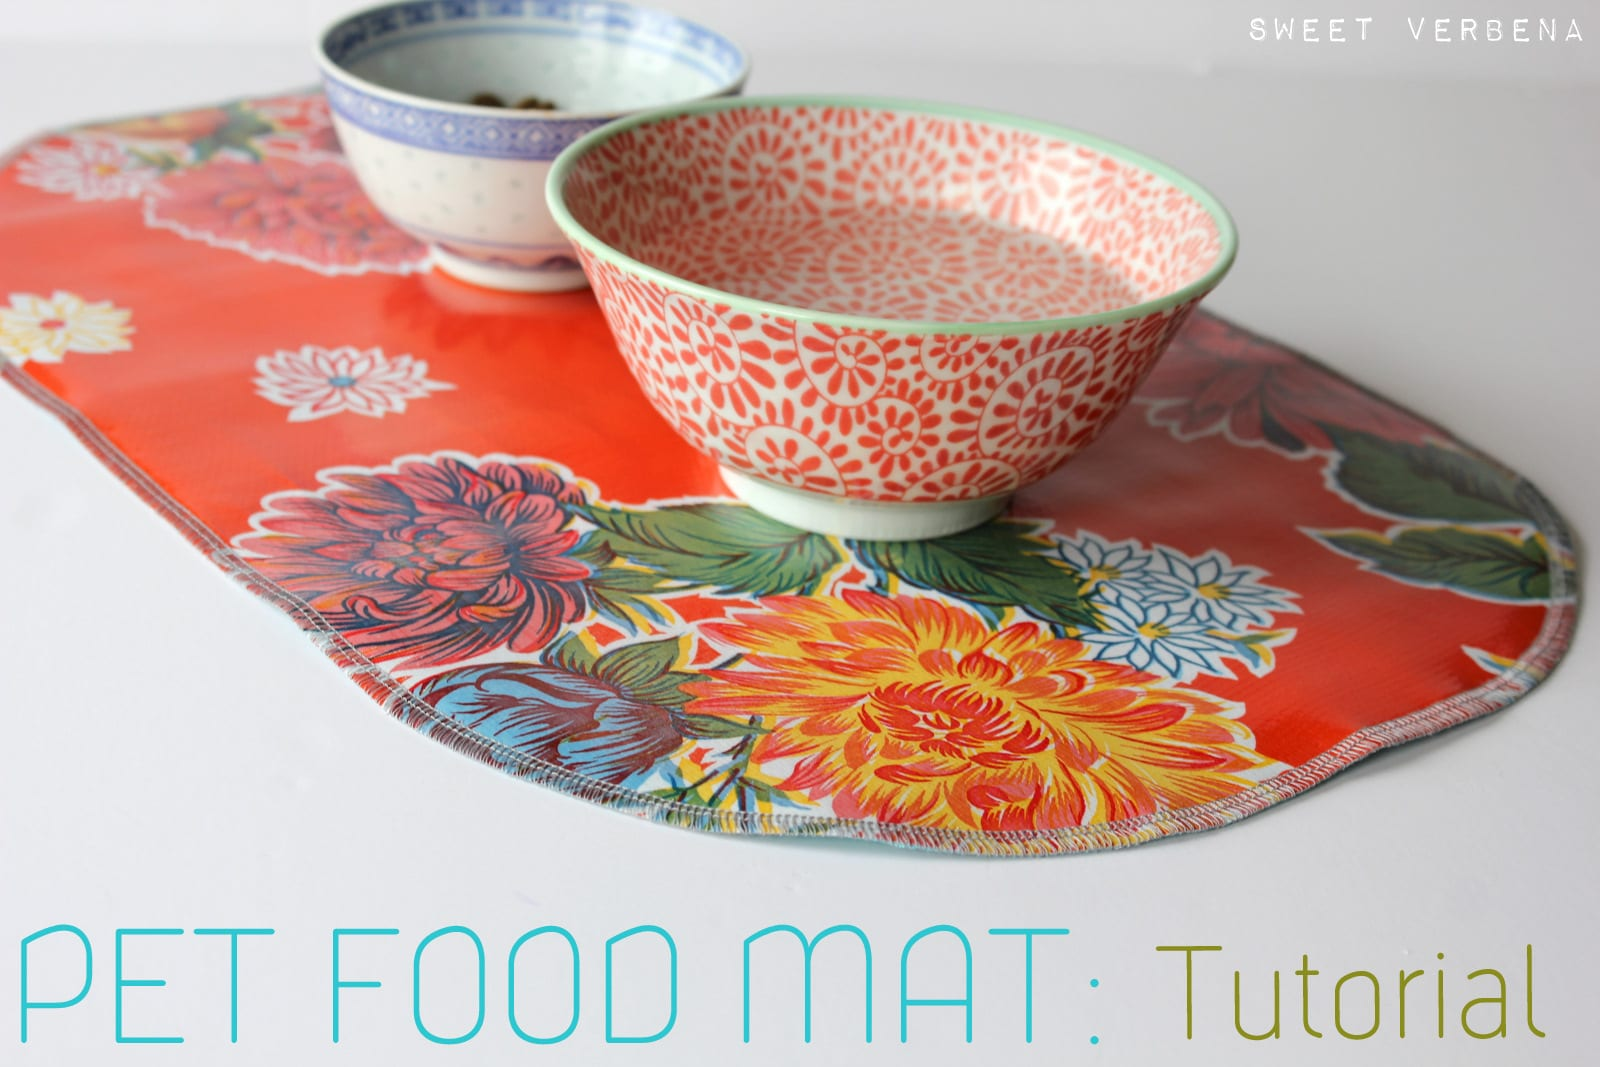 Pet Food Mat FREE Sewing Tutorial